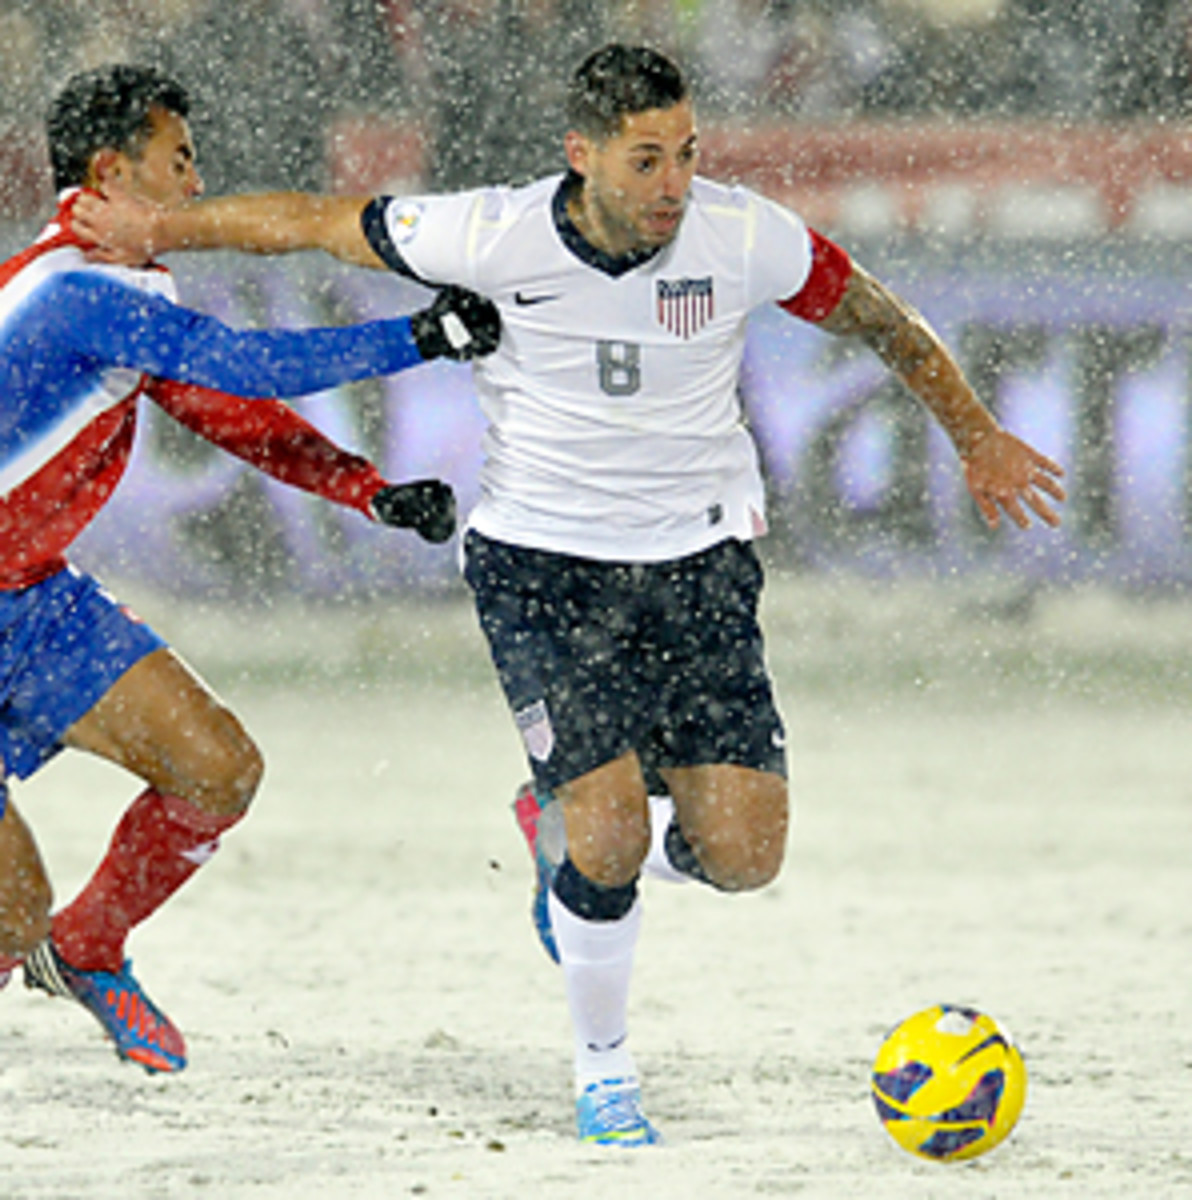 Clint Dempsey scored the only goal in the United States' World Cup qualifier win over Costa Rica, played in a snow storm in Colorado.